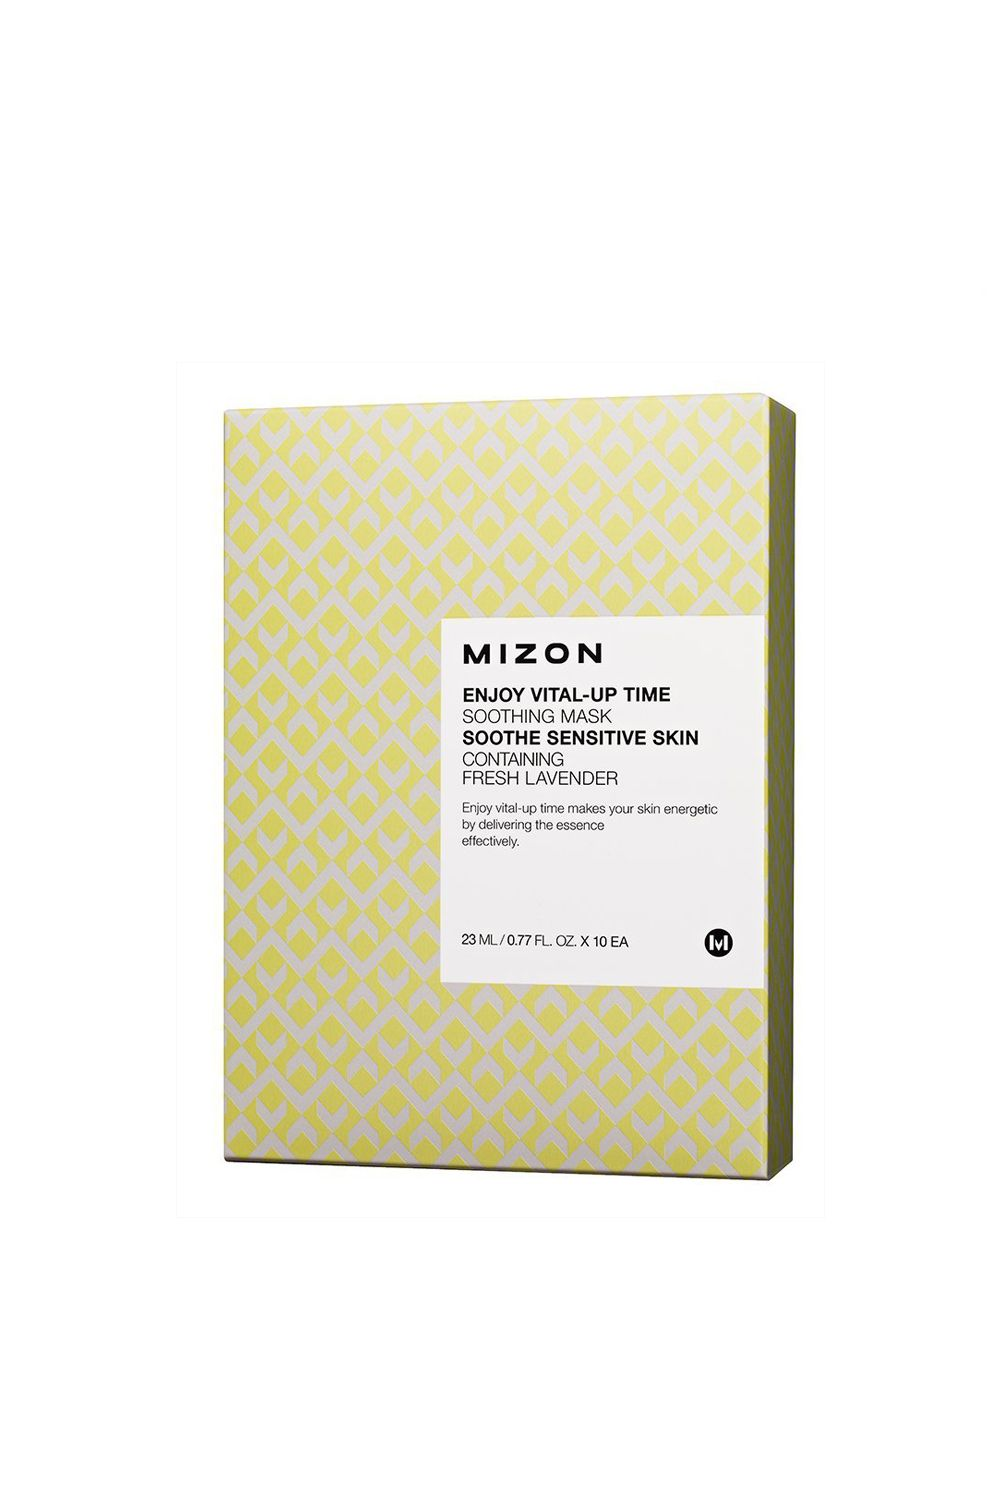 Mizon Enjoy Vital-Up Time Soothing Mask Mizon Enjoy Vital-Up Time Soothing Mask, $4 SHOP IT For skin that's more reactive, use this mask to alleviate redness and brighten up discoloration.